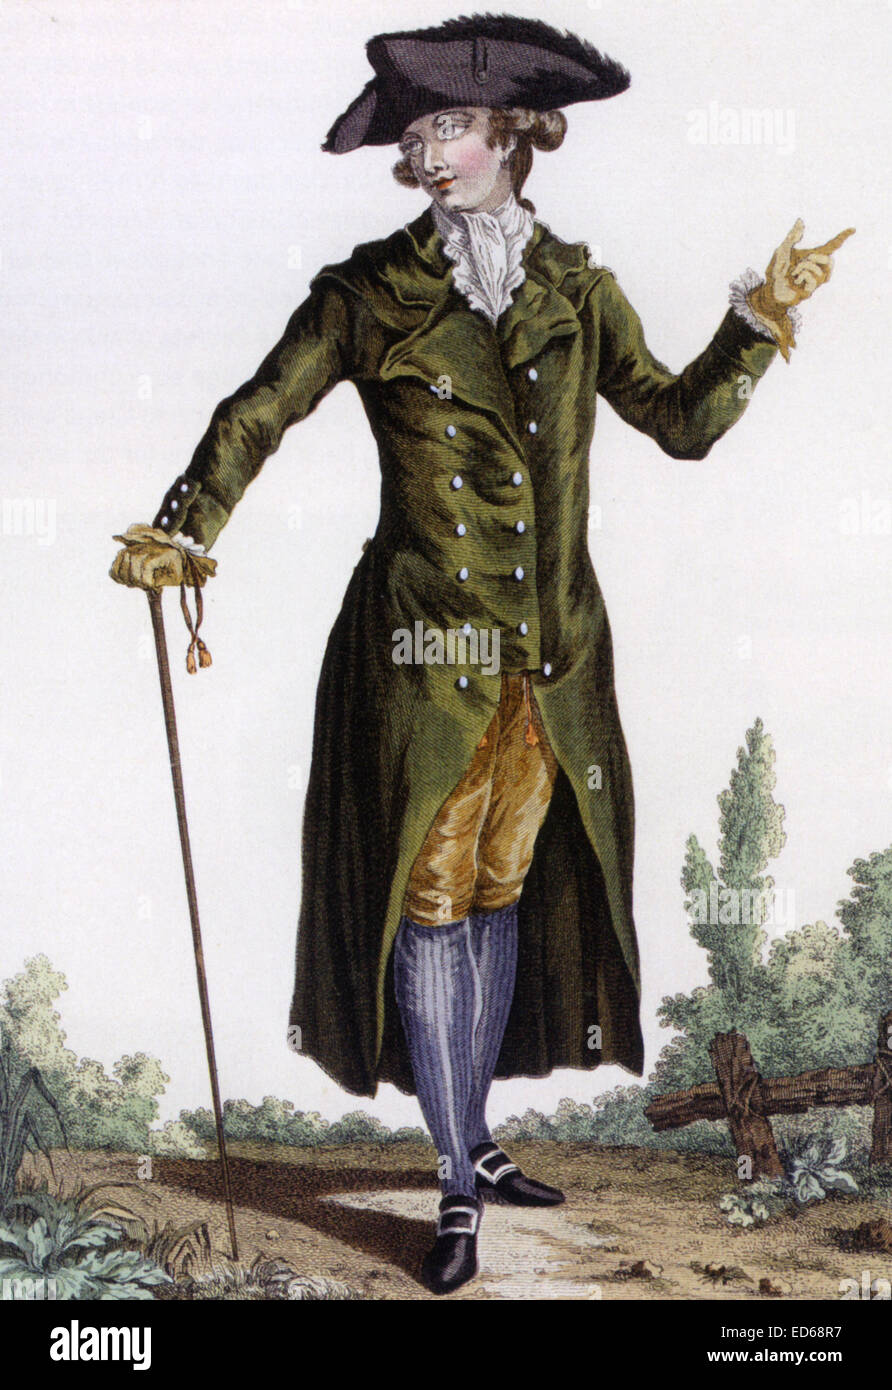 French Fashion Plate About 1780 Showing A Man Wearing A